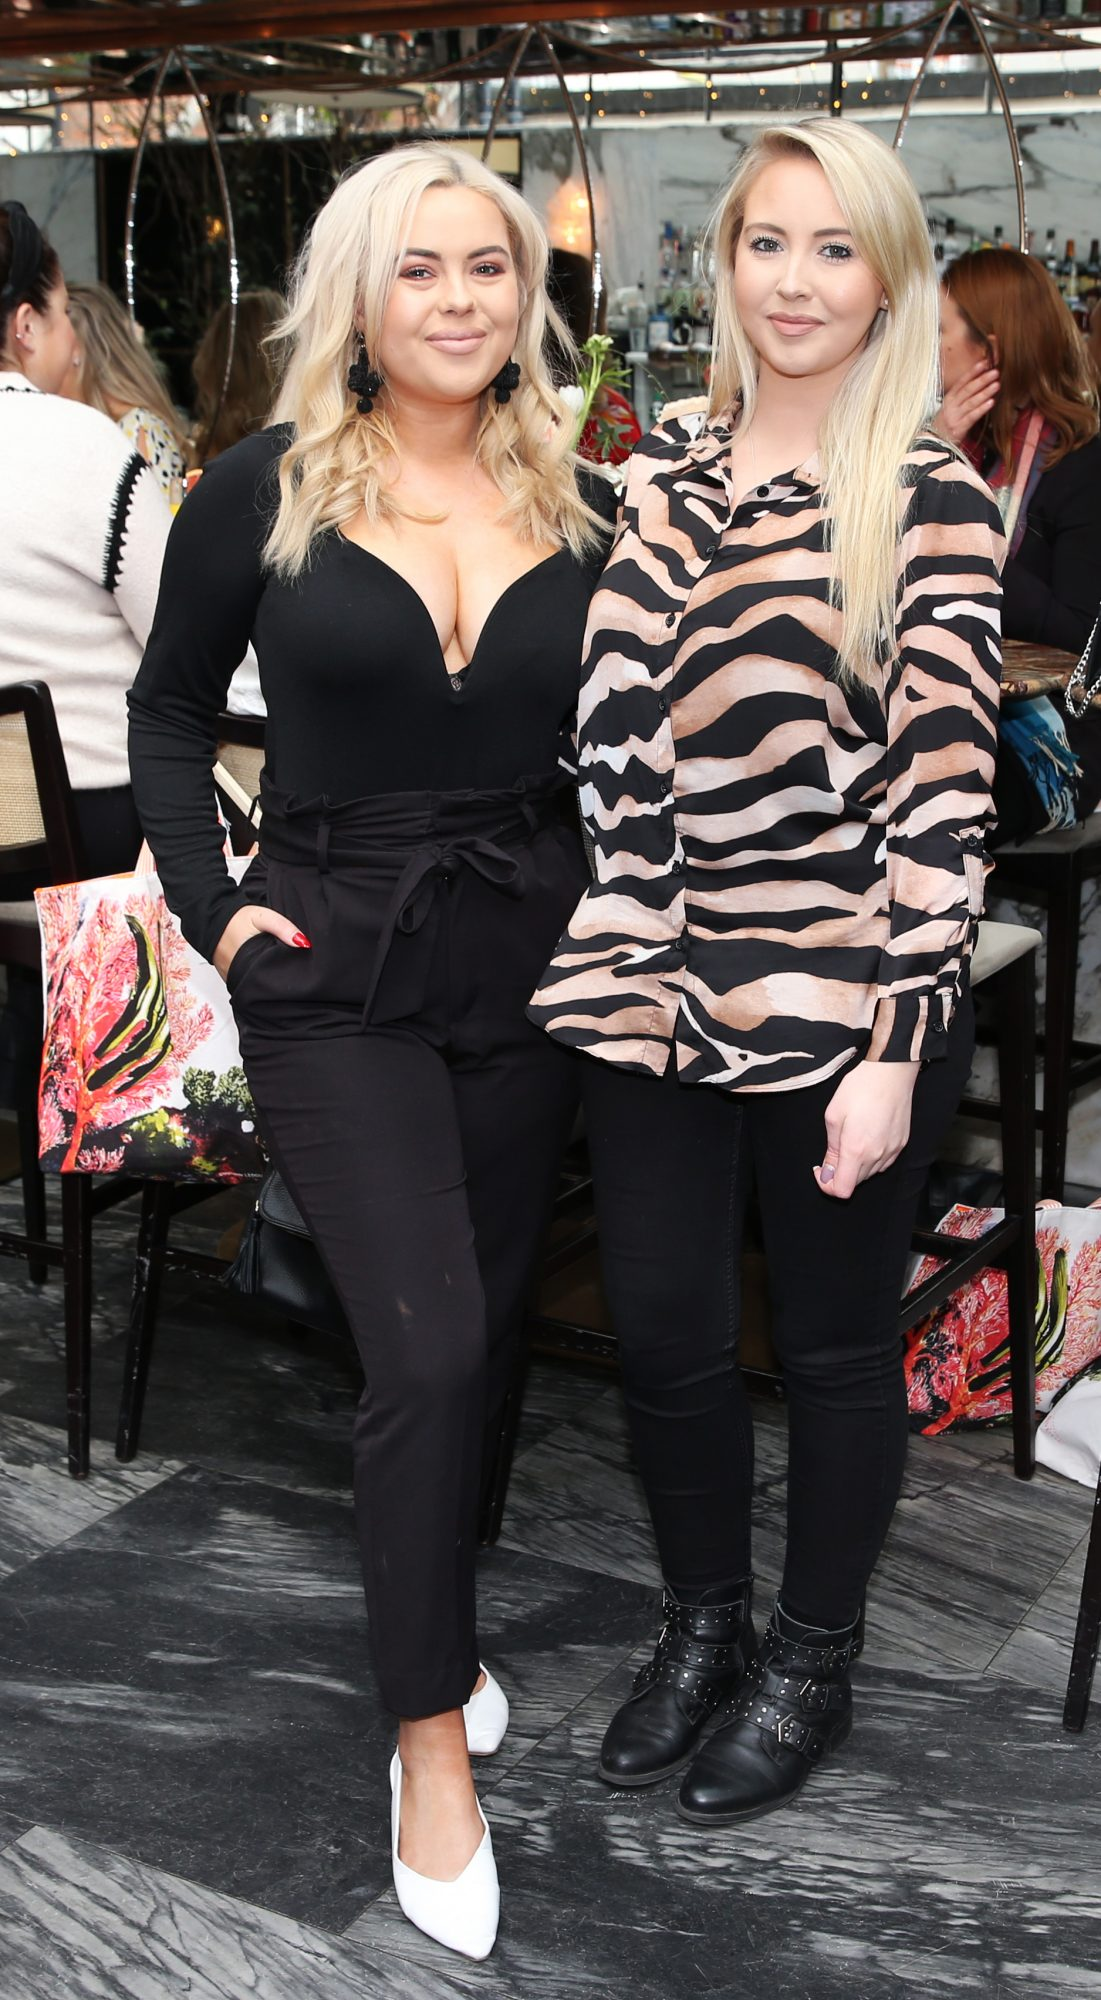 NO REPRO FEE. Pictured is Ali Ryan and Kendra Becker at the launch of the new Avène Expert Suncare Range in The Grayson Dublin. The new range of suncare from the French brand is suitable for all skin types and includes a Sports Sun Cream, a City Shield BB Style High Protection Face Cream, two new SPF Body Sprays and a new Very High Protection Children's SPF. For more information visit www.avene.ie. Photo: Leon Farrell/Photocall Ireland.